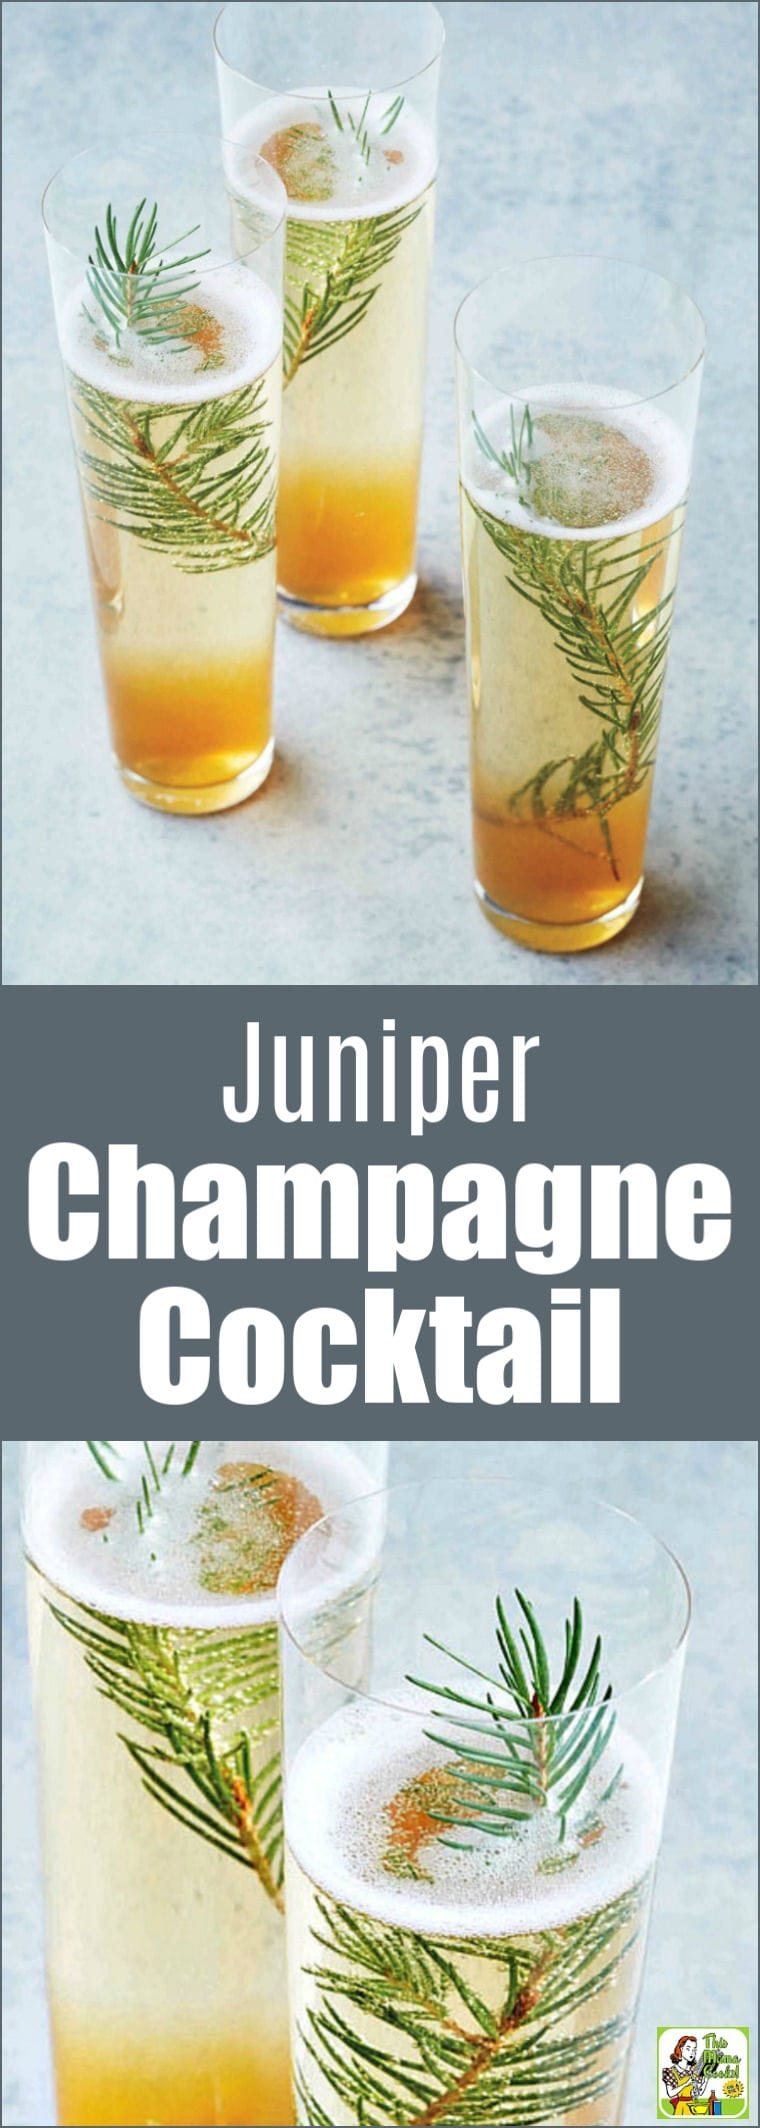 Ring in the New Year with a Juniper Champagne Cocktail! This unique champagne cocktail recipe uses simple syrup, crushed juniper berries, and a festive pine sprig. #cocktails #cocktailrecipes #drinks #drinking #champagne #recipe #recipes #newyears #newyearseve